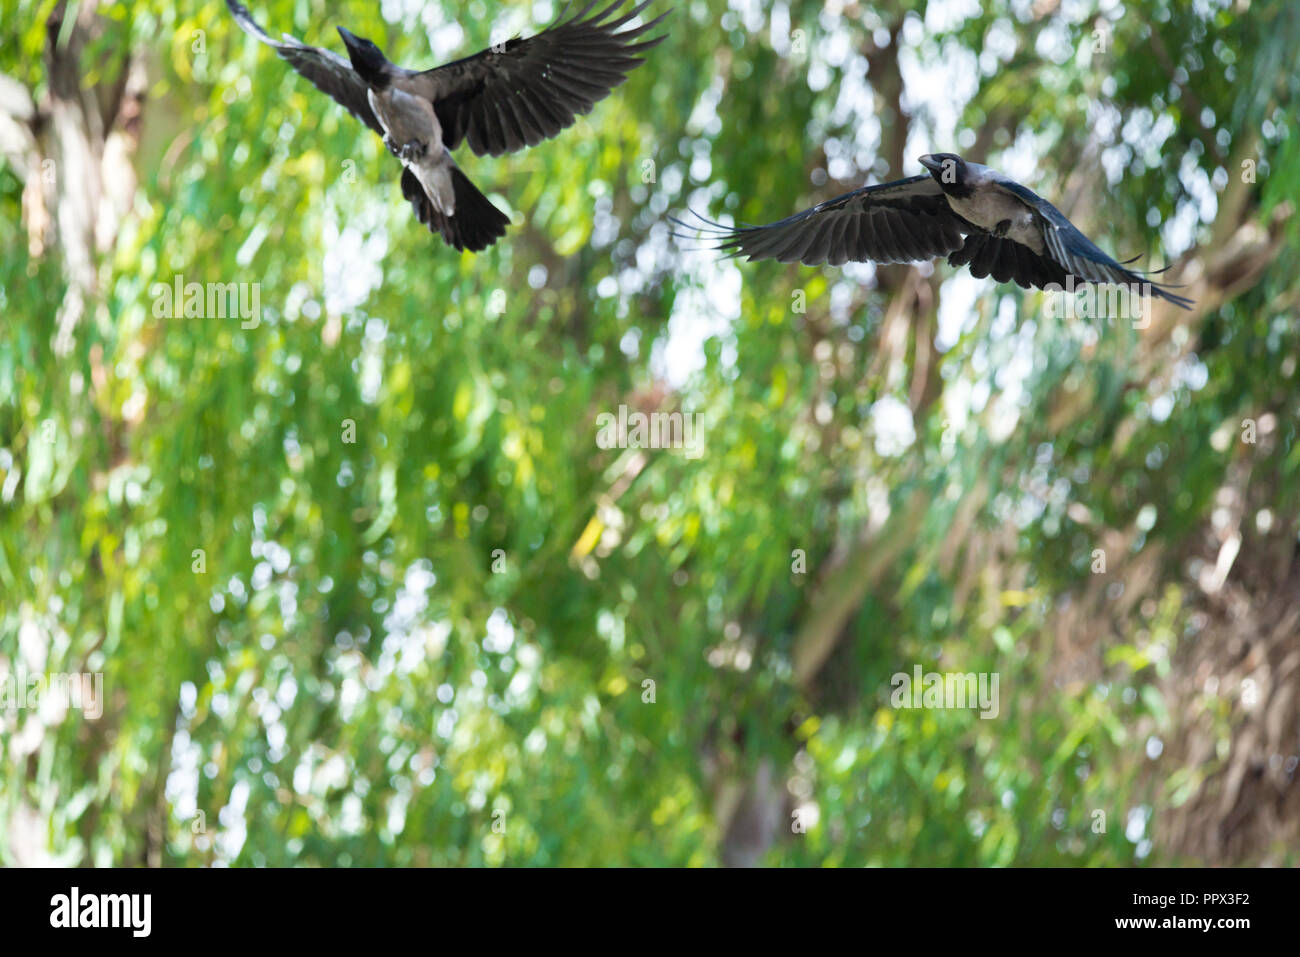 Two Bird Crow Fly Flying in a Green Forest Fear in Blue sky darkness and death - Stock Image